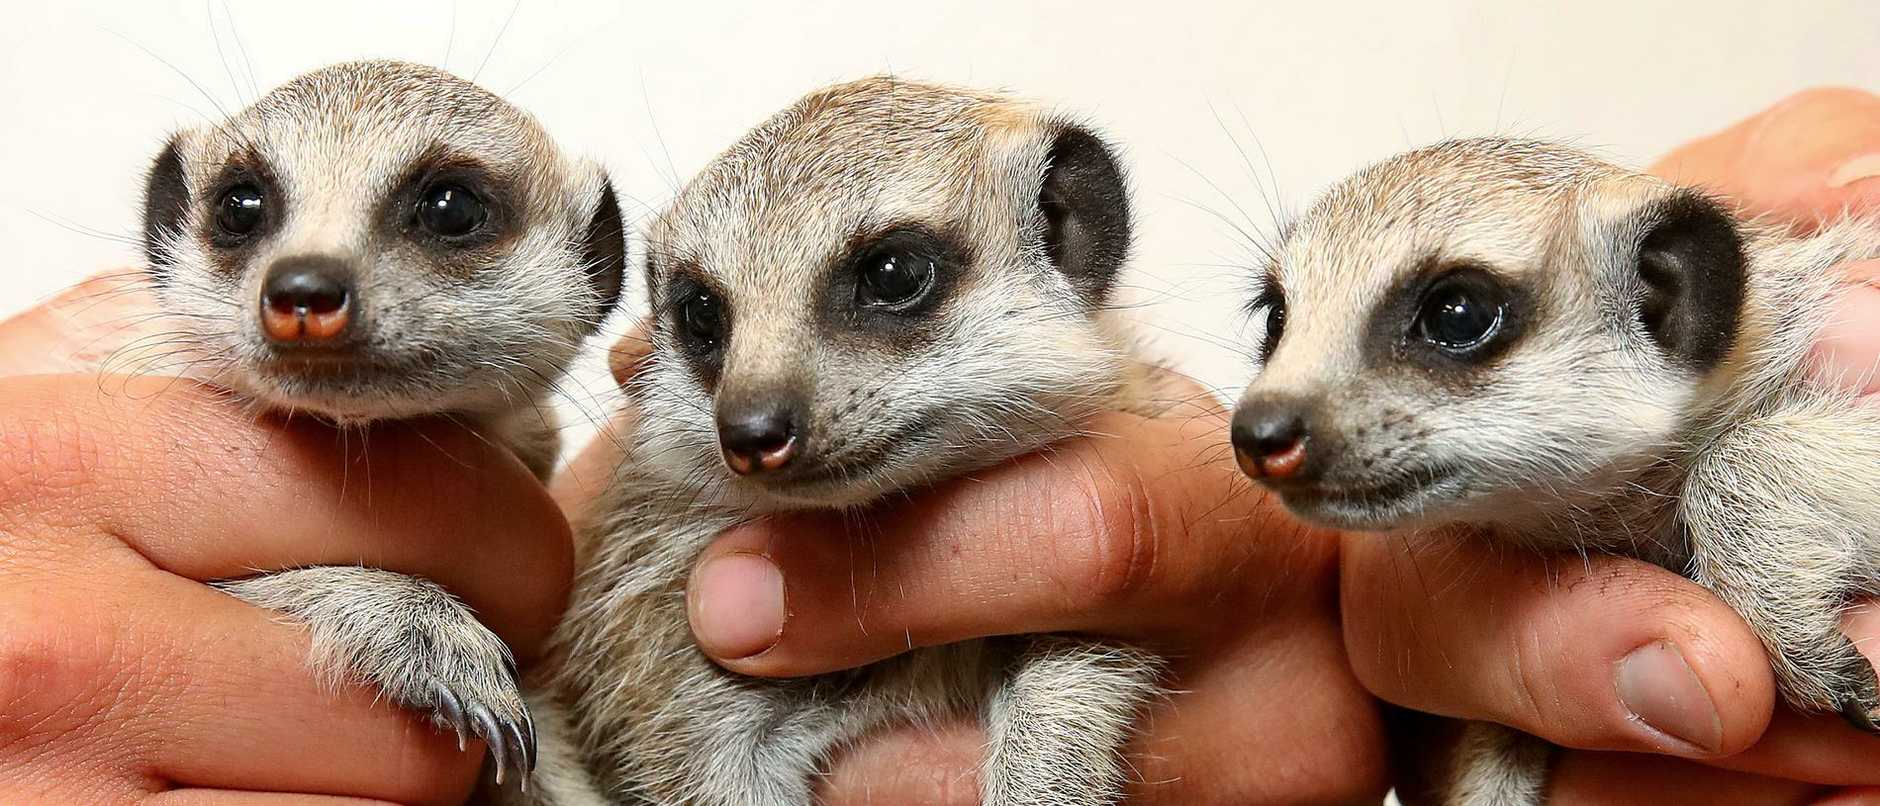 They are small, cute and come in threes. Say hello to Sydney Zoo's newest residents.